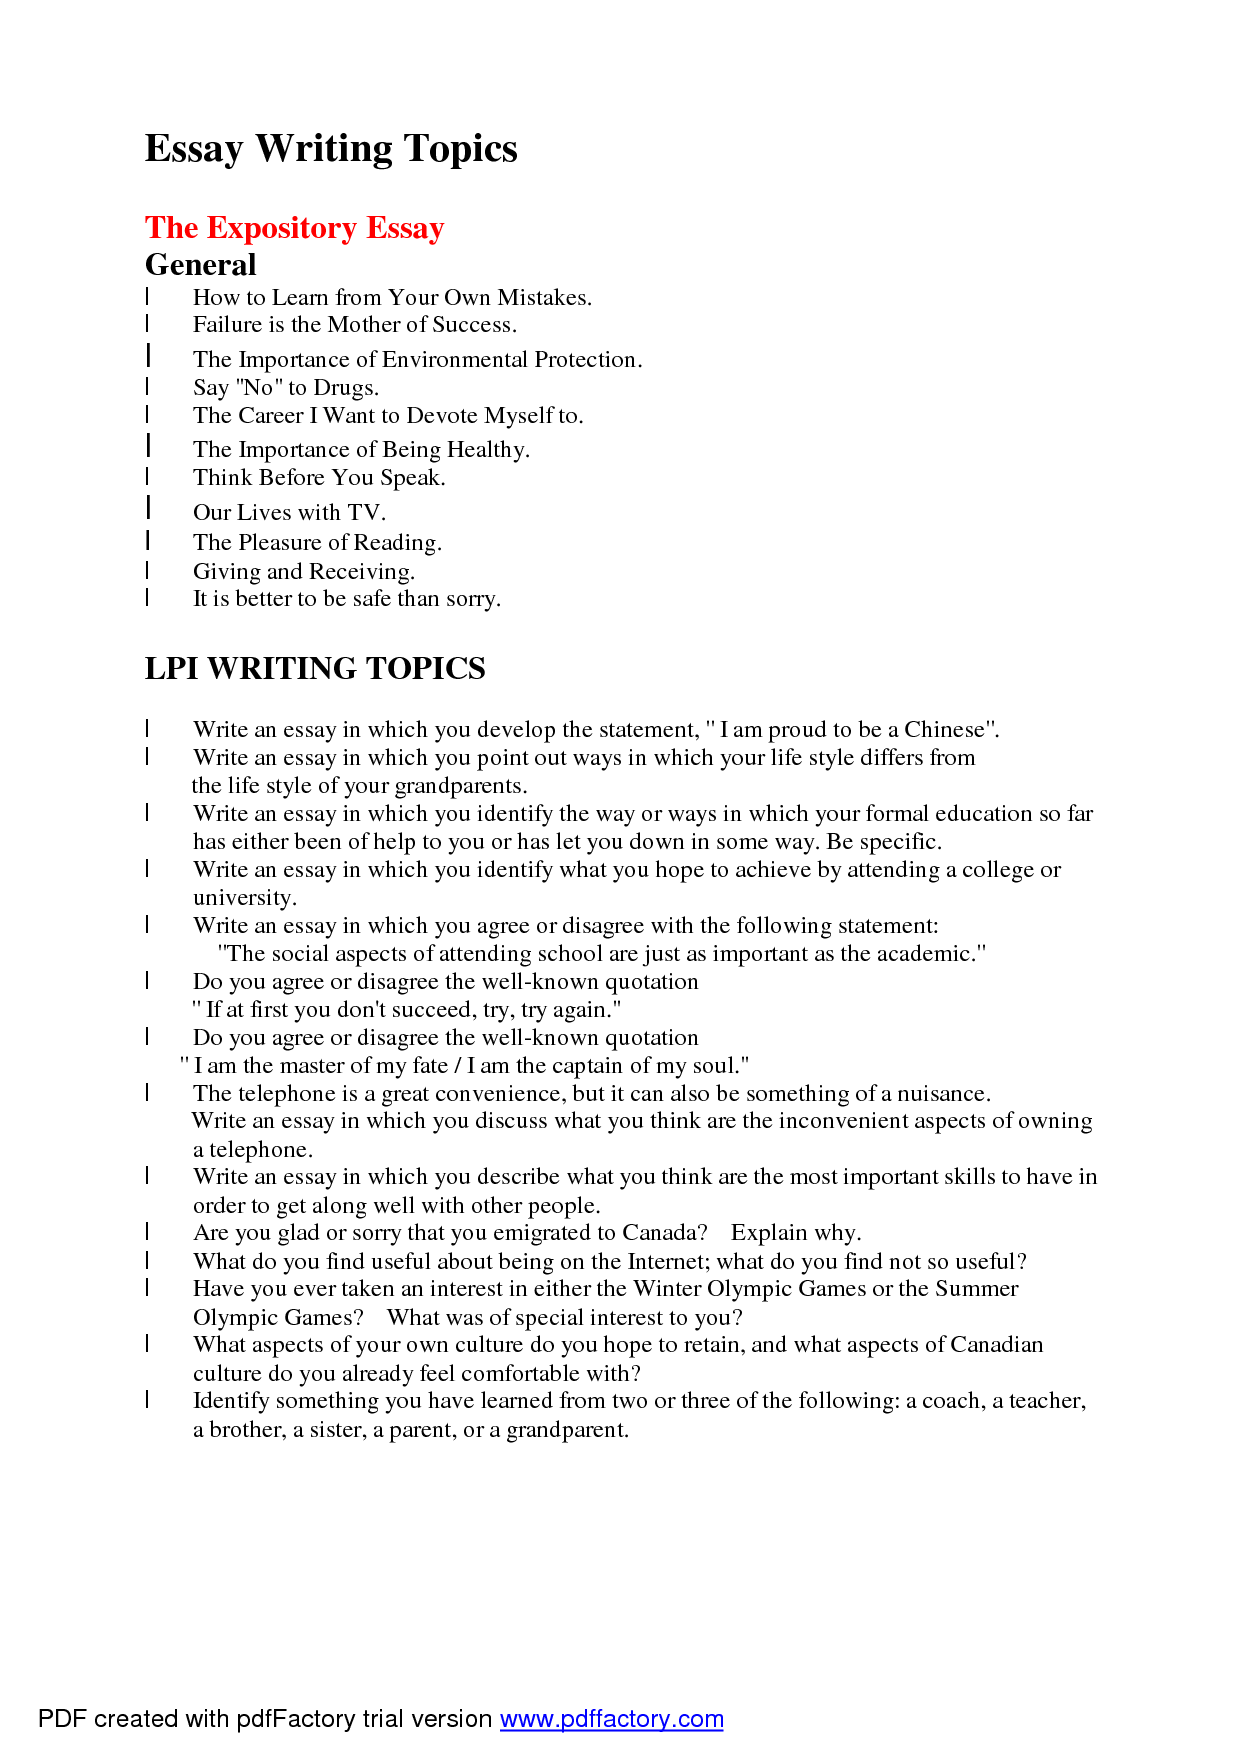 001 Essay Example Topics To Write About Arguable Good L In Unbelievable Writing Interesting For Competition Hindi Ielts With Answers Pdf Full